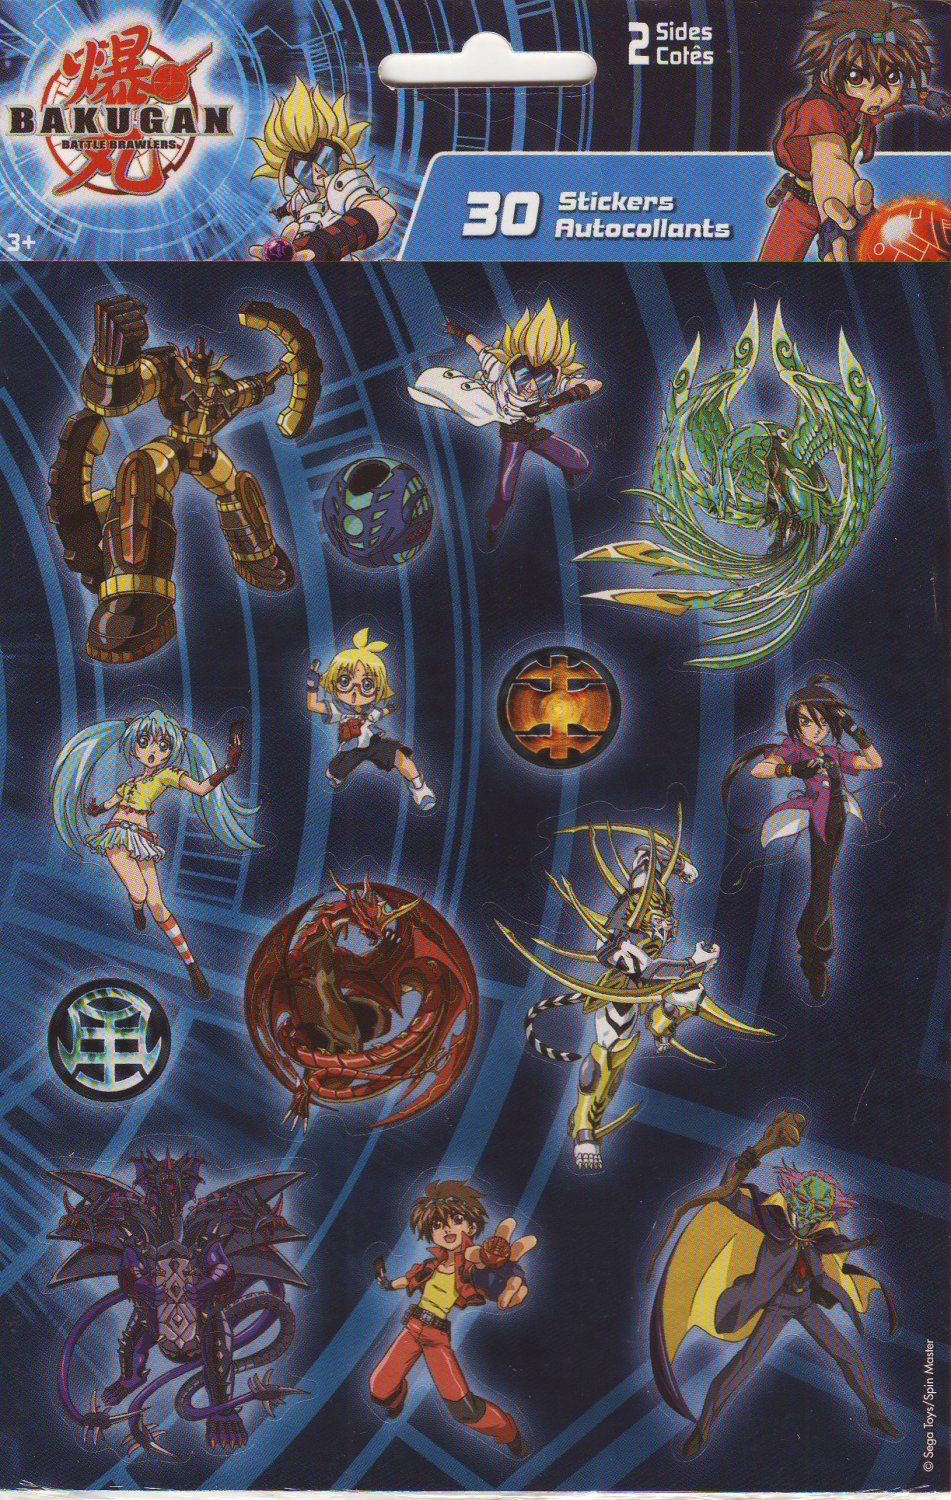 Bakugan Battle Brawlers 30 Stickers Bakugan Battle Brawlers